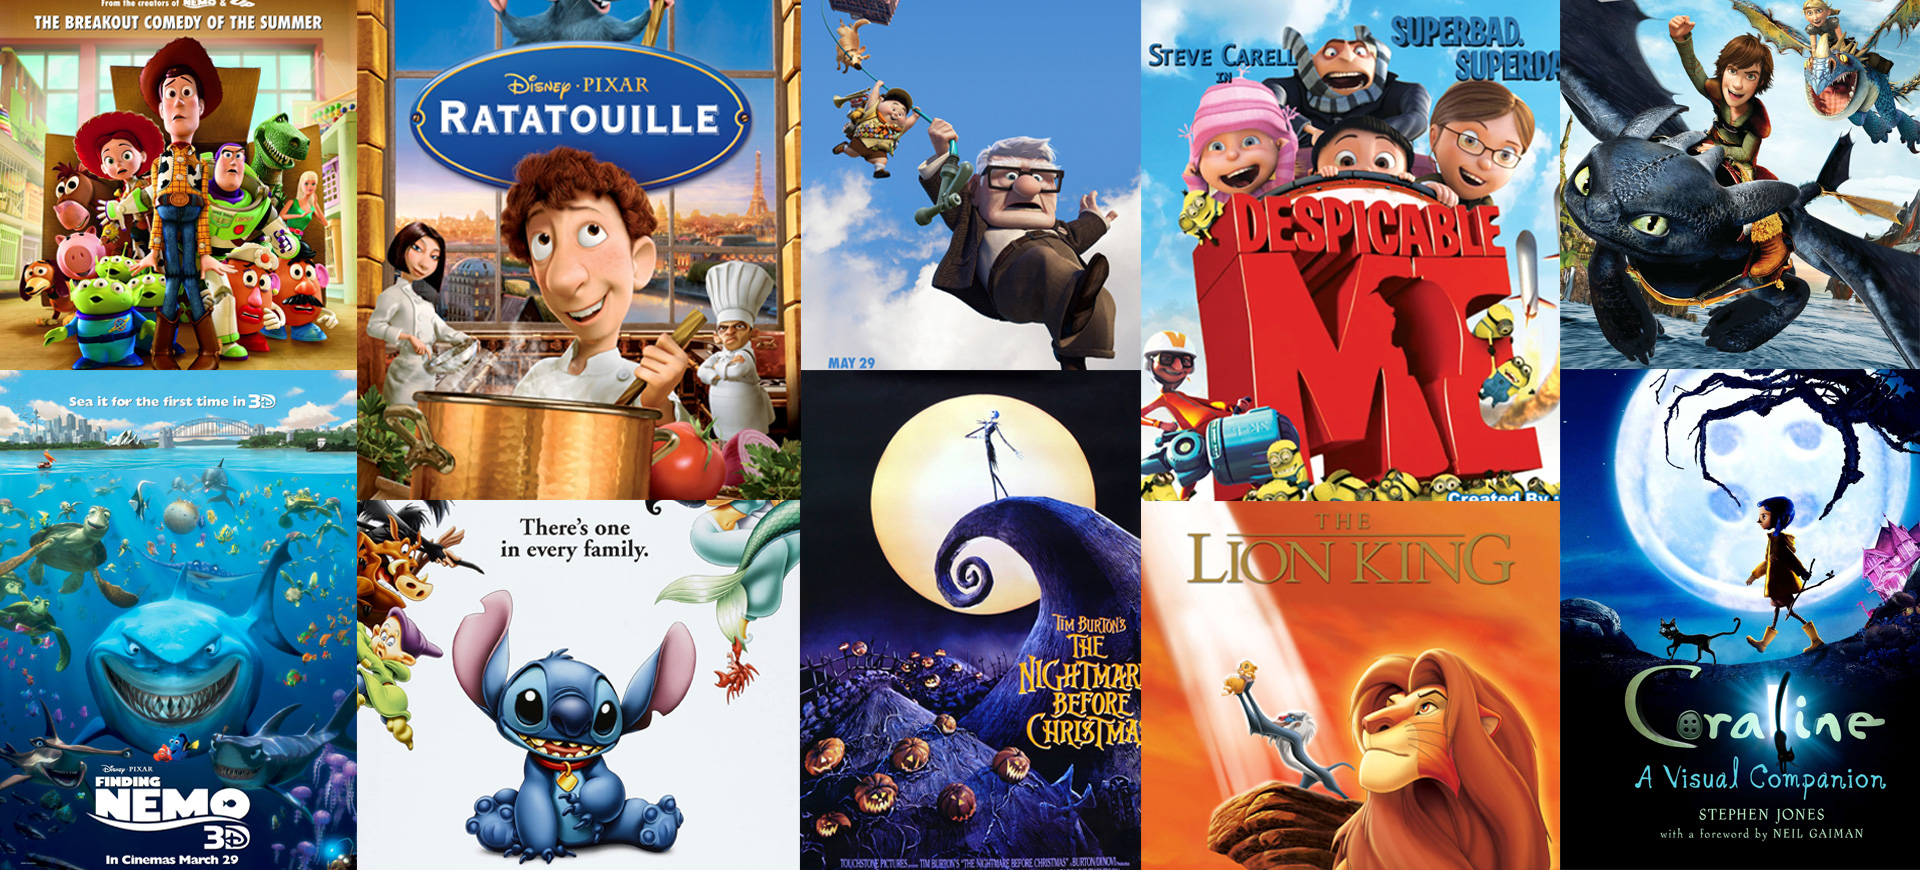 Top 10 Animated Movie Posters Design Trends Premium Psd Vector Downloads